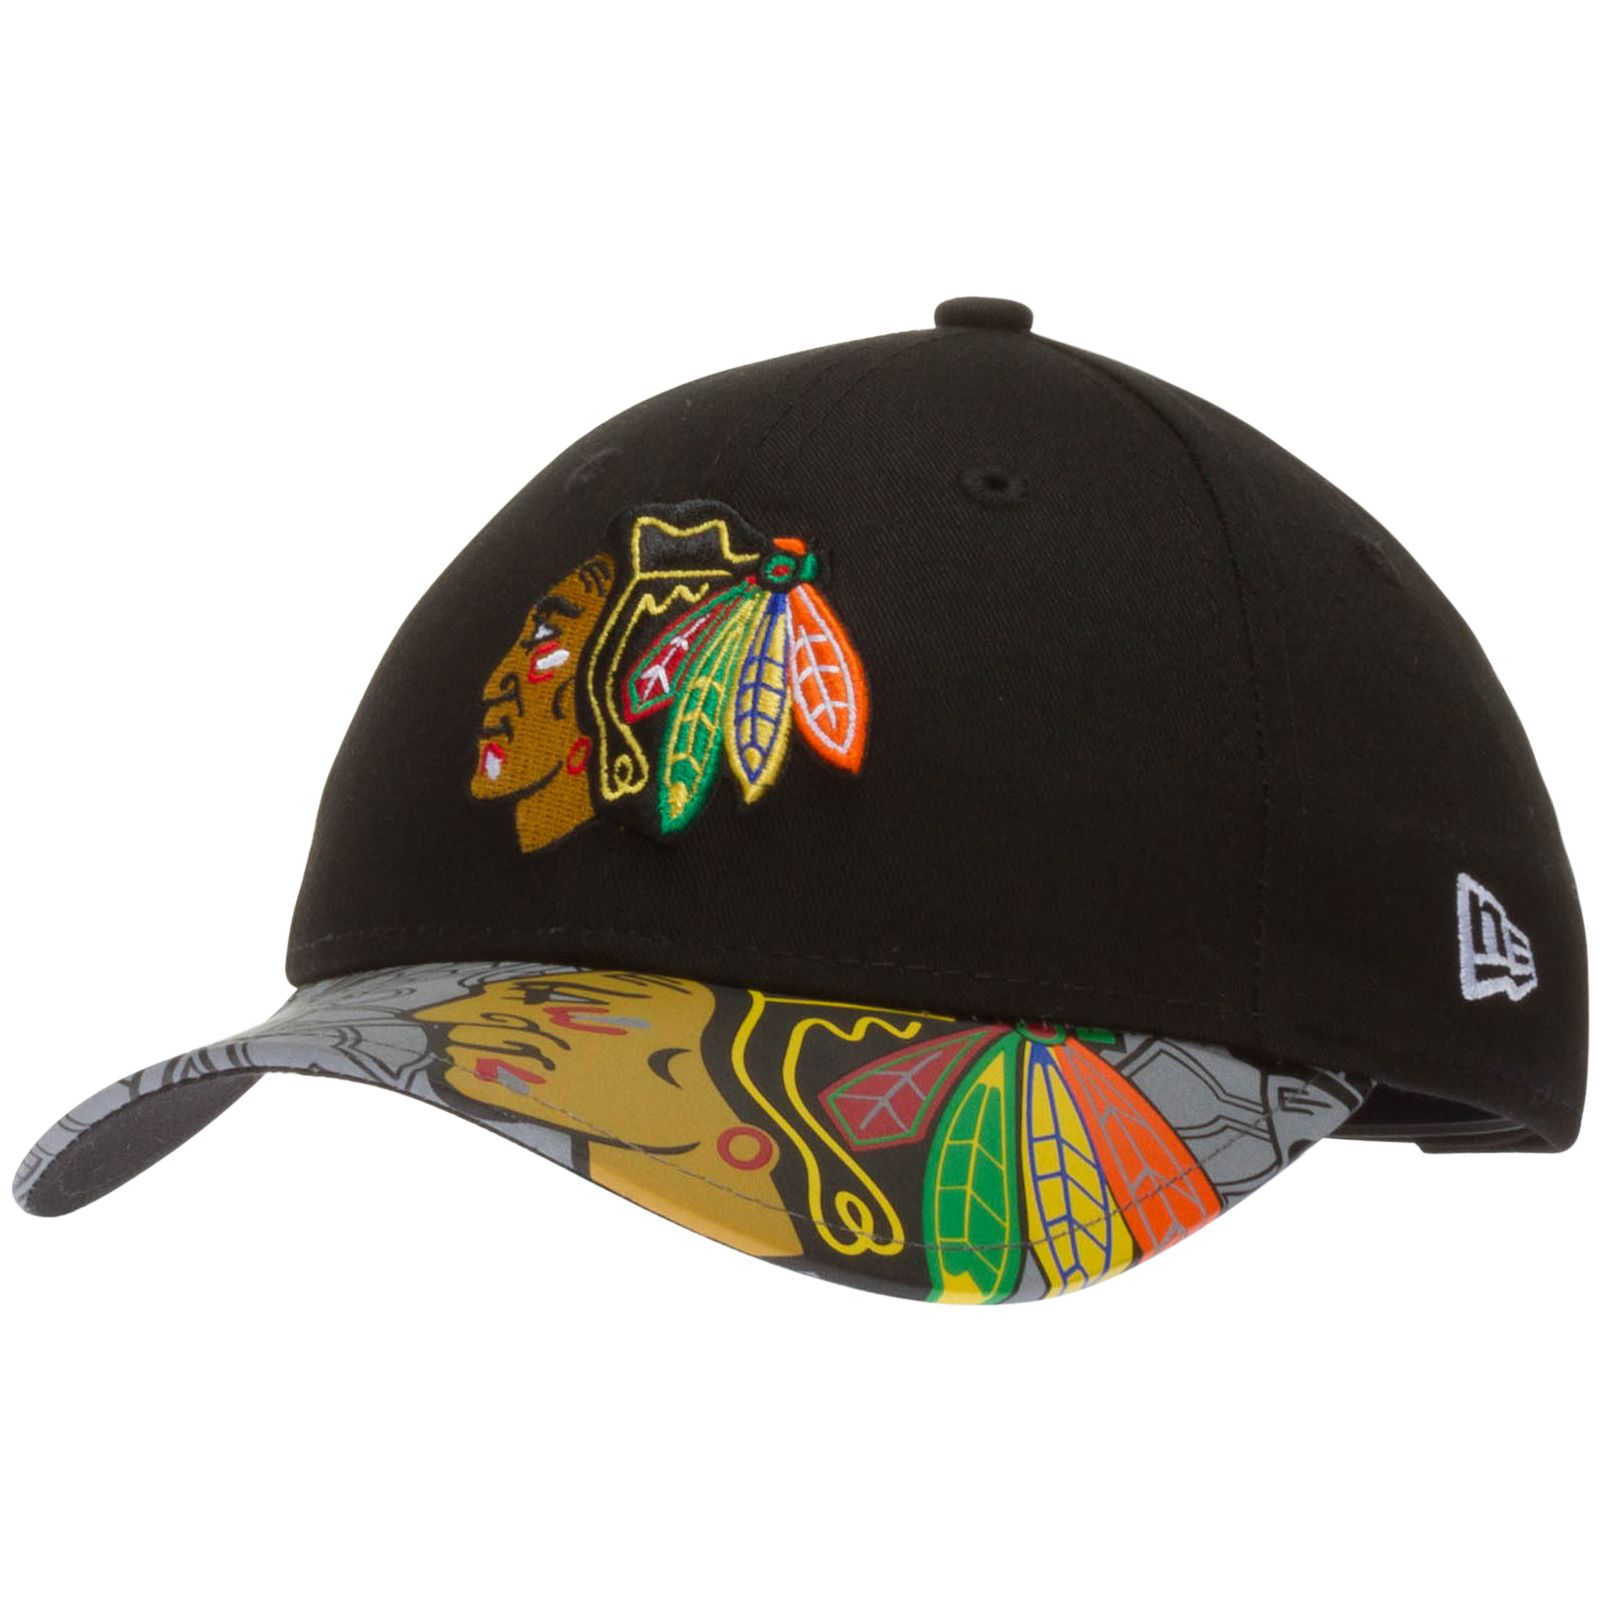 7c46523e40db77 Chicago Blackhawks Toddler Black Primary Logo Crown with Sublimated Logo  Reflective Bill Adjustable Hat by New Era #Chicago #Blackhawks # ChicagoBlackhawks